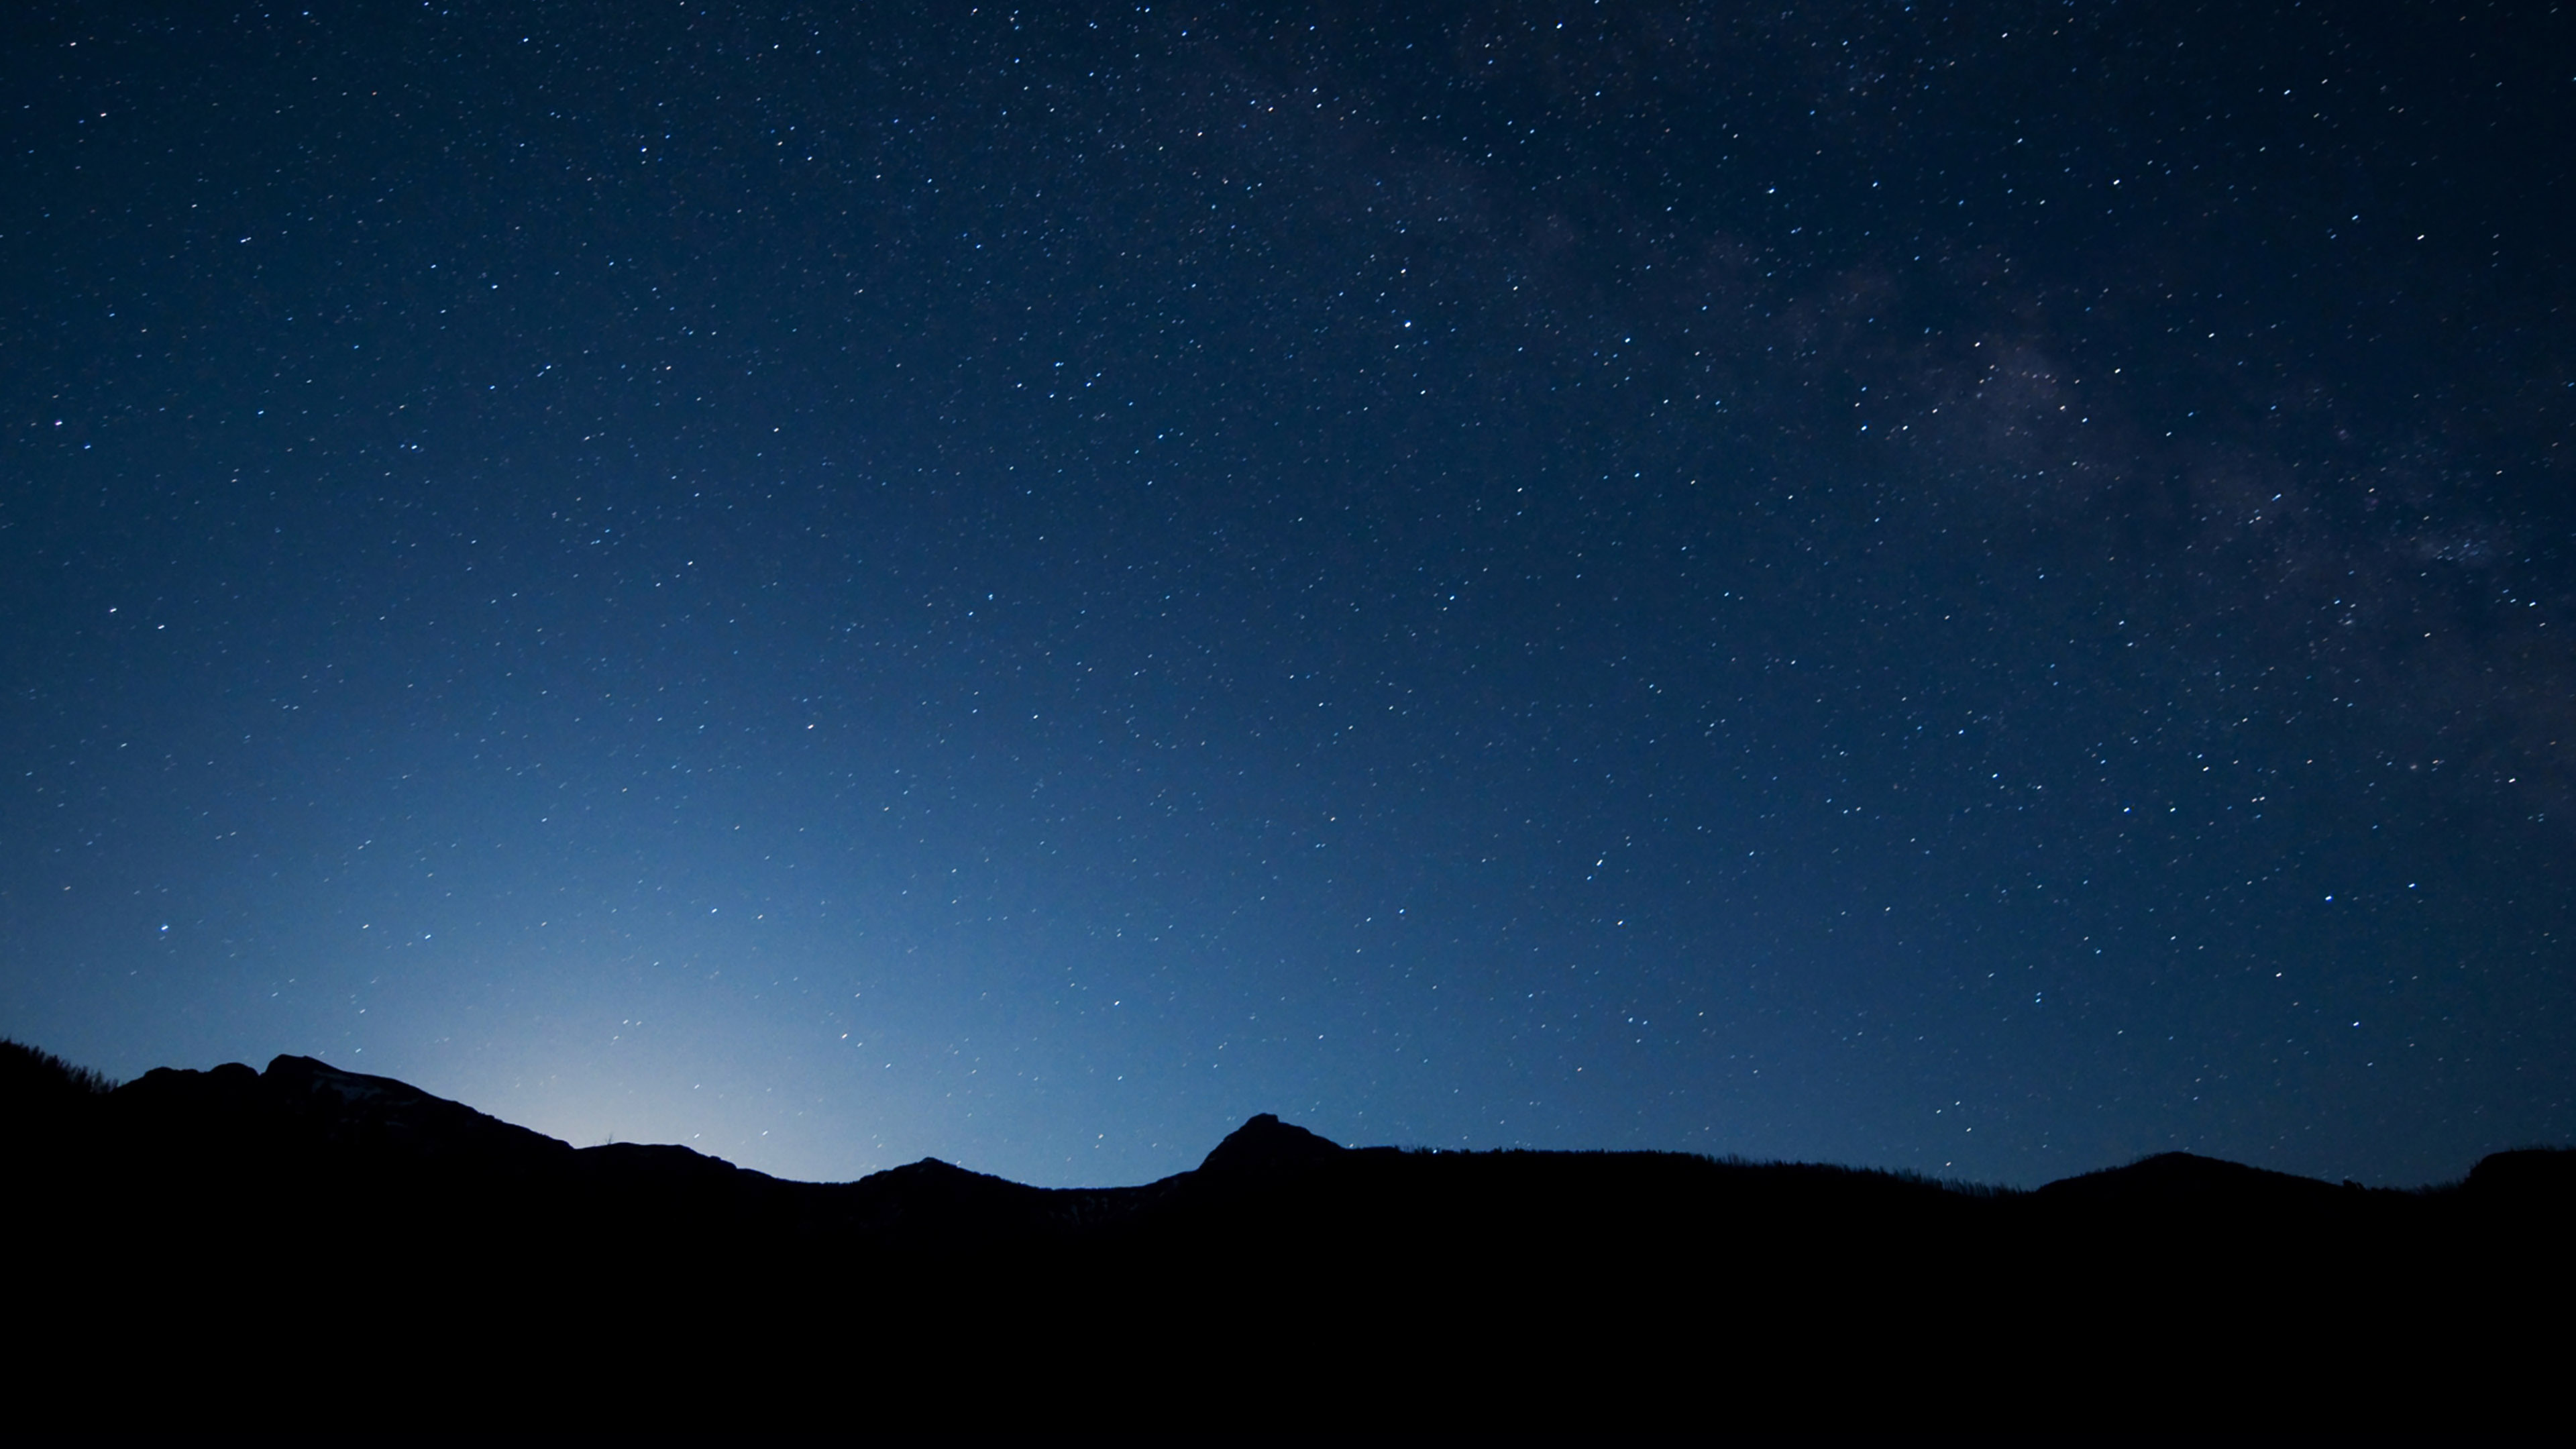 Animal Wallpaper Full Hd Mg92 Night Sky Wide Mountain Star Shining Nature Papers Co